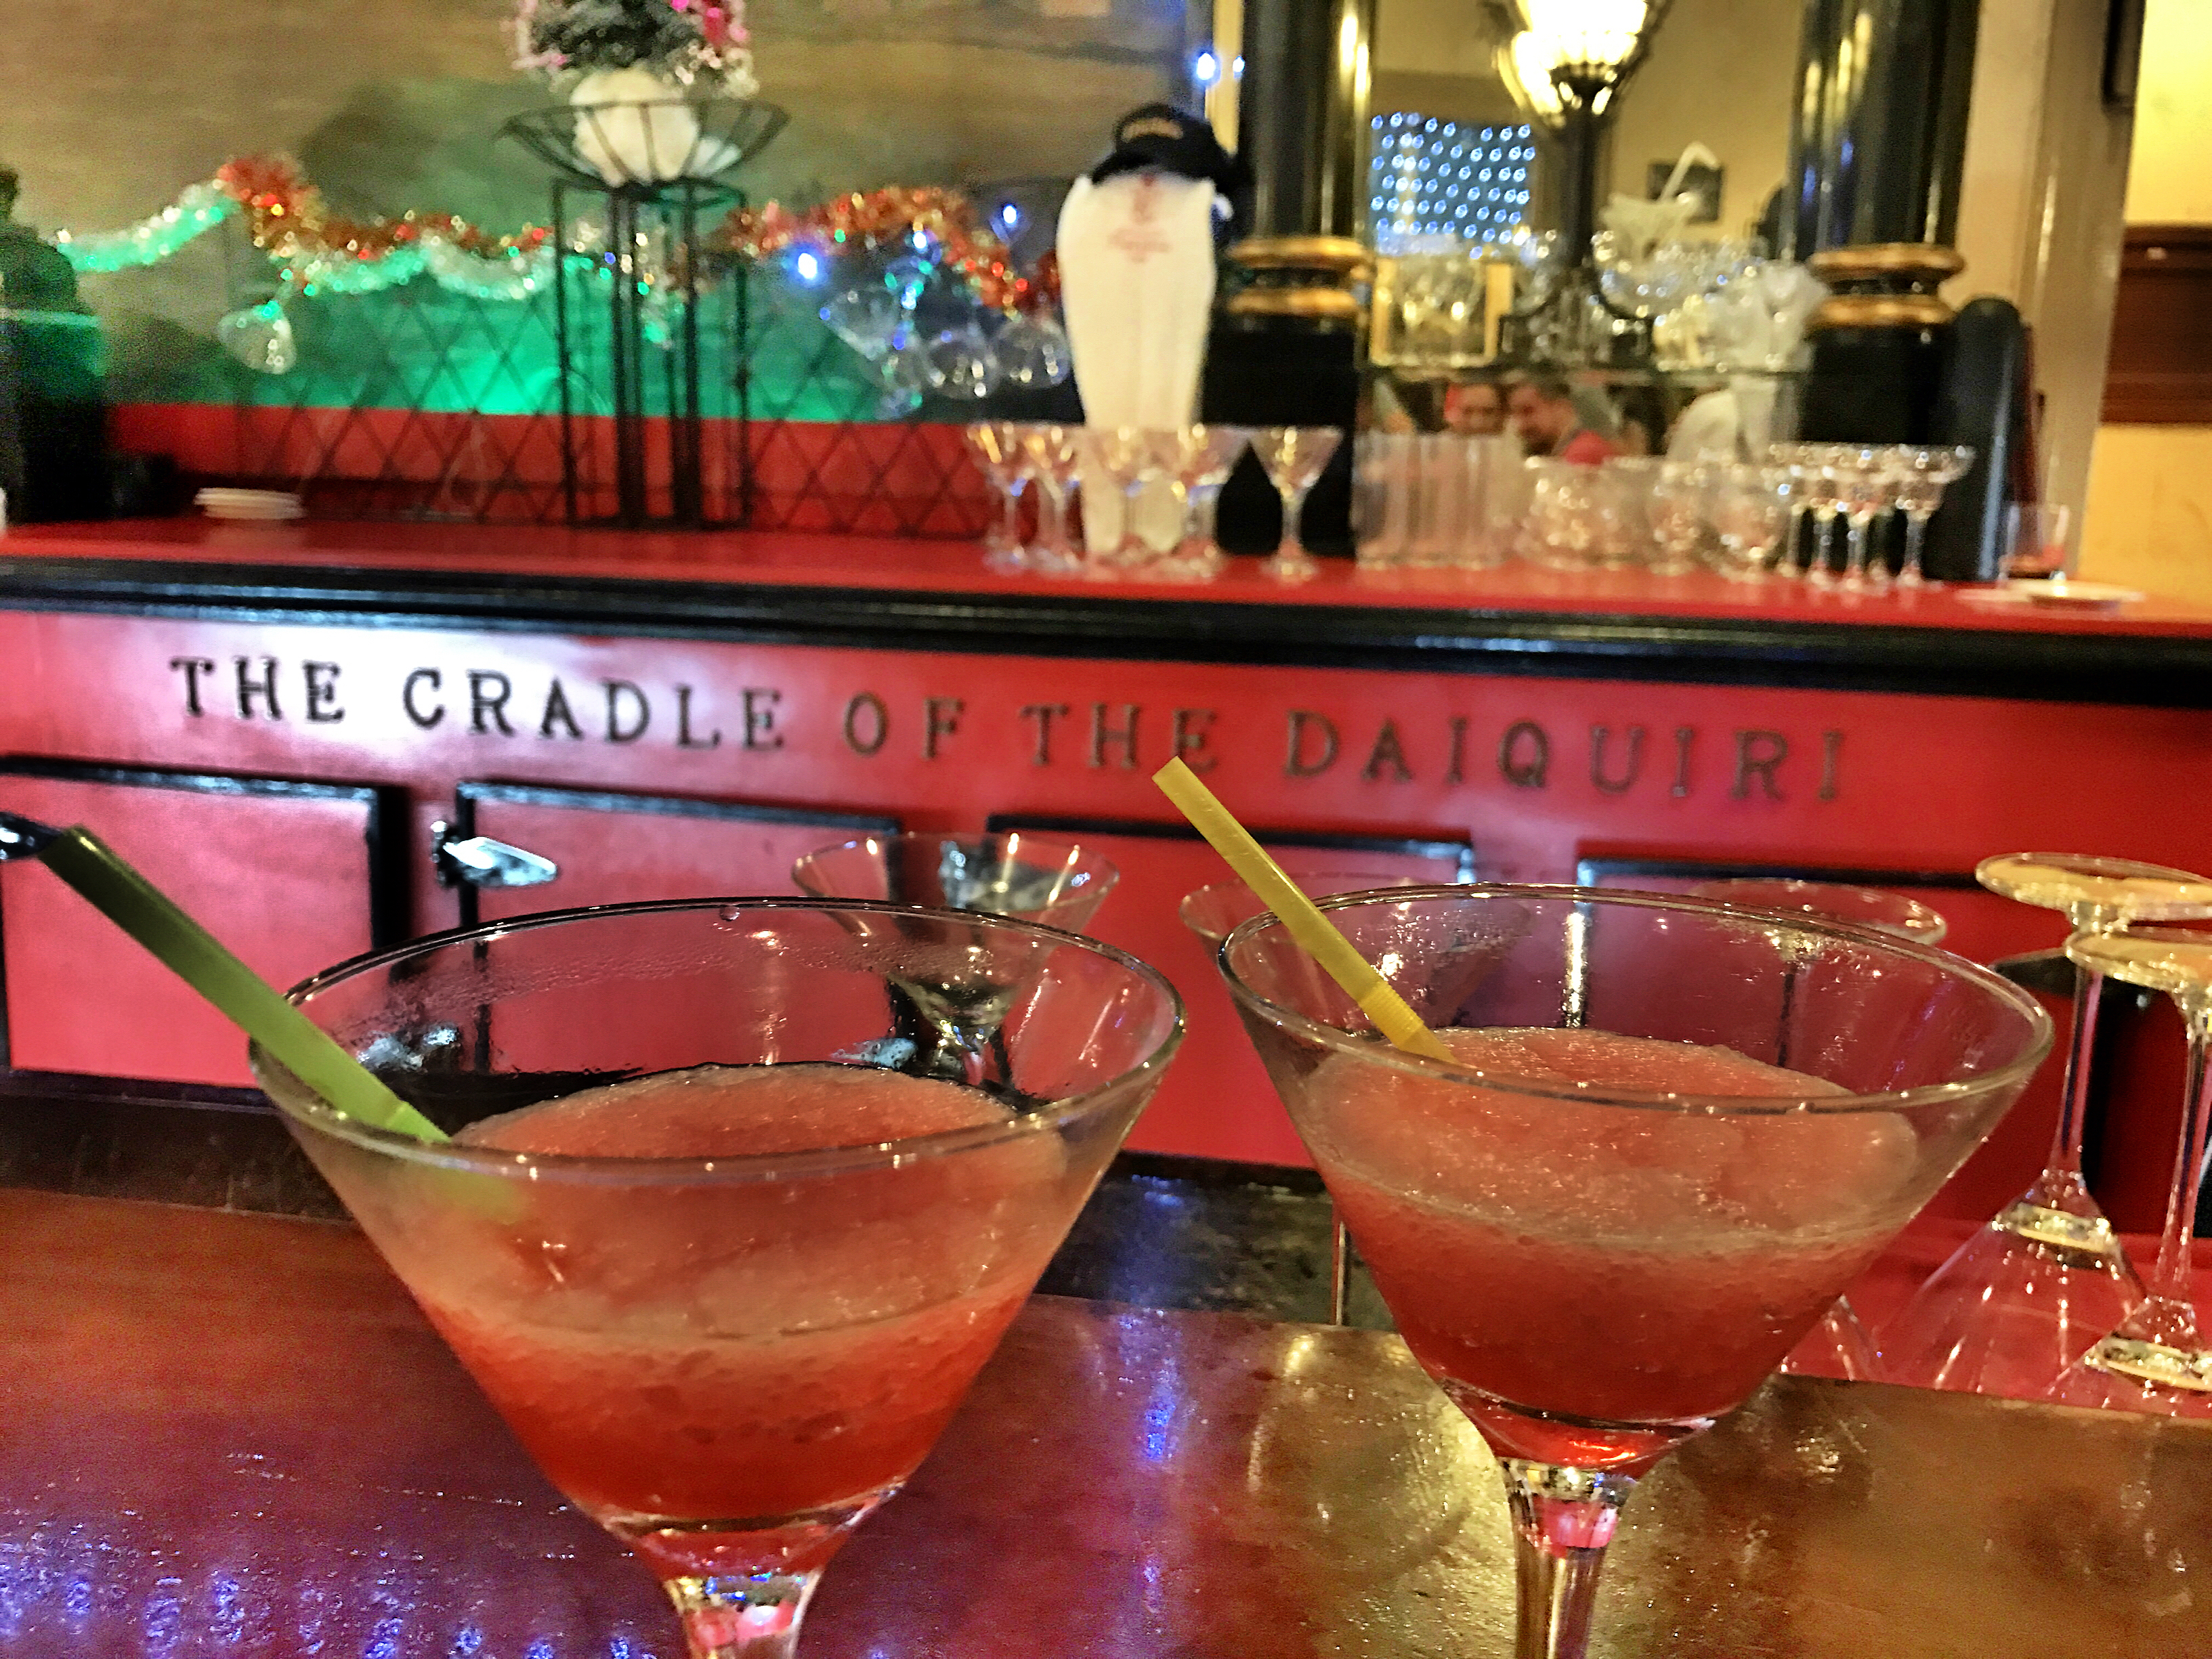 floridita-strawberry-daquiri-havana-cuba